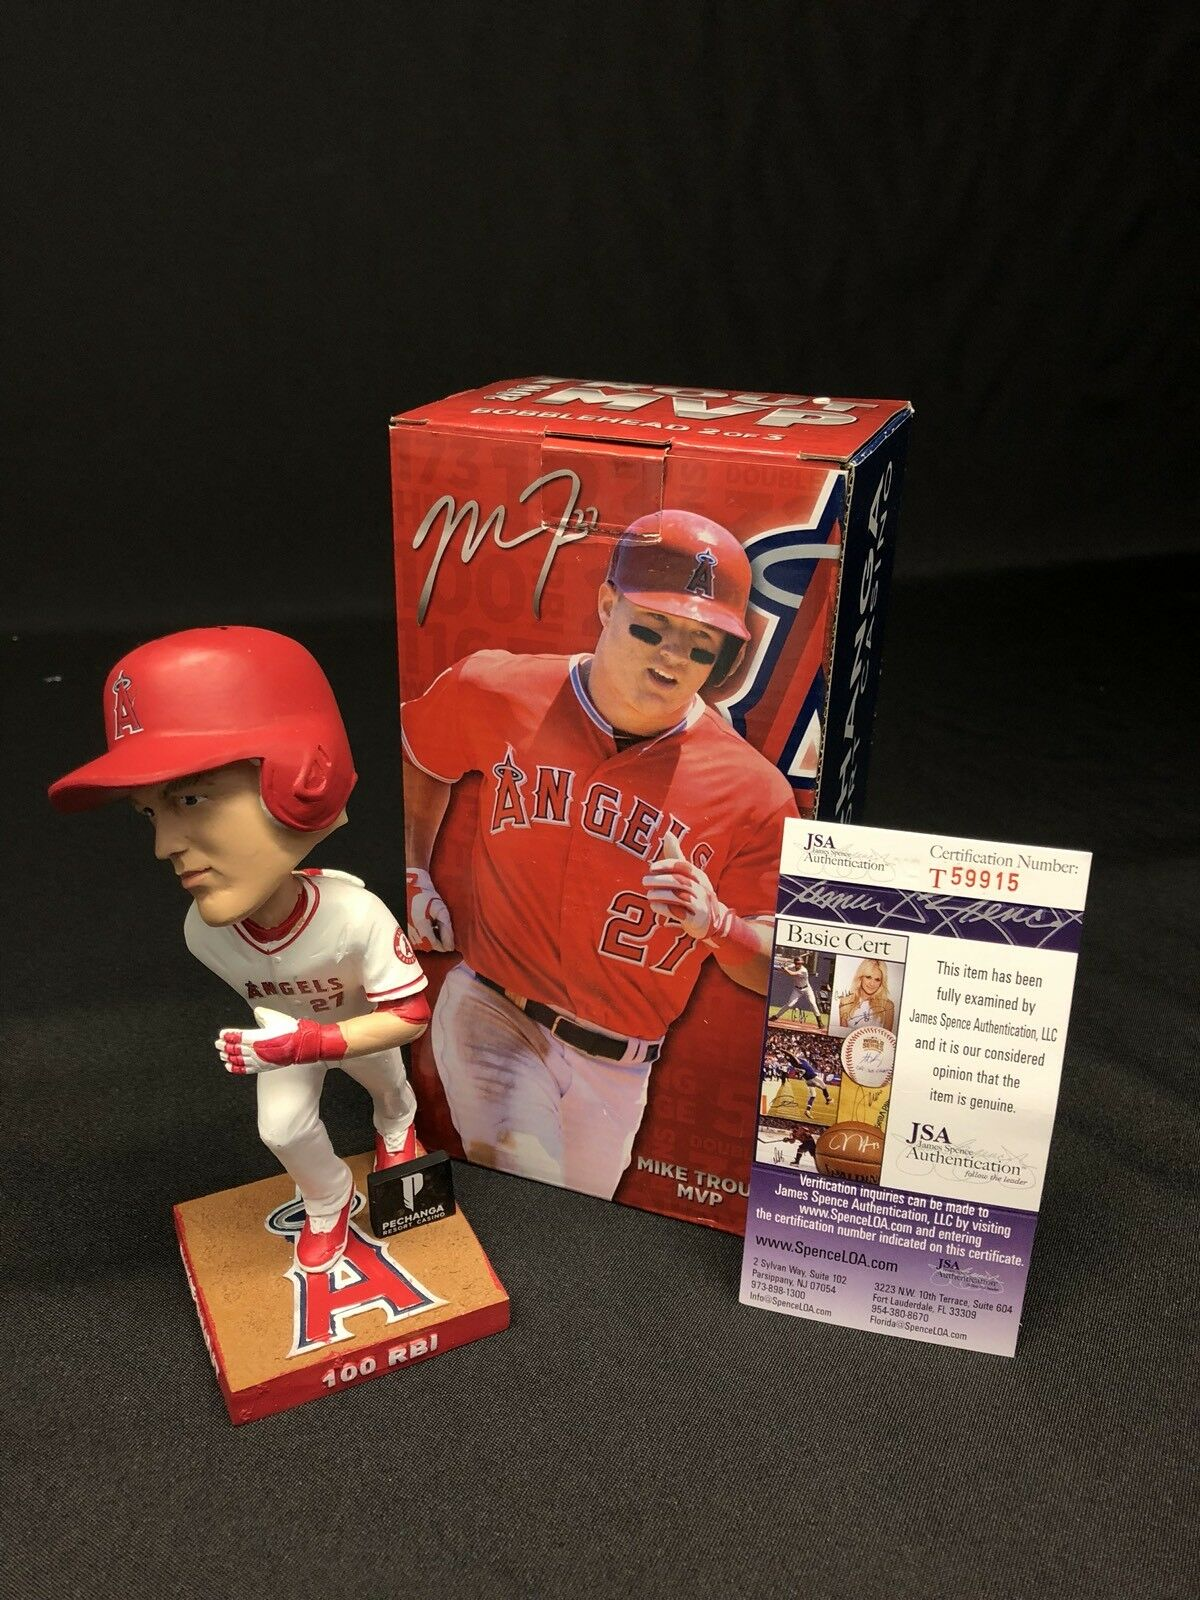 Mike Trout Signed 2016 Angels MVP Baseball Bobblehead 2 of 3 JSA T59915